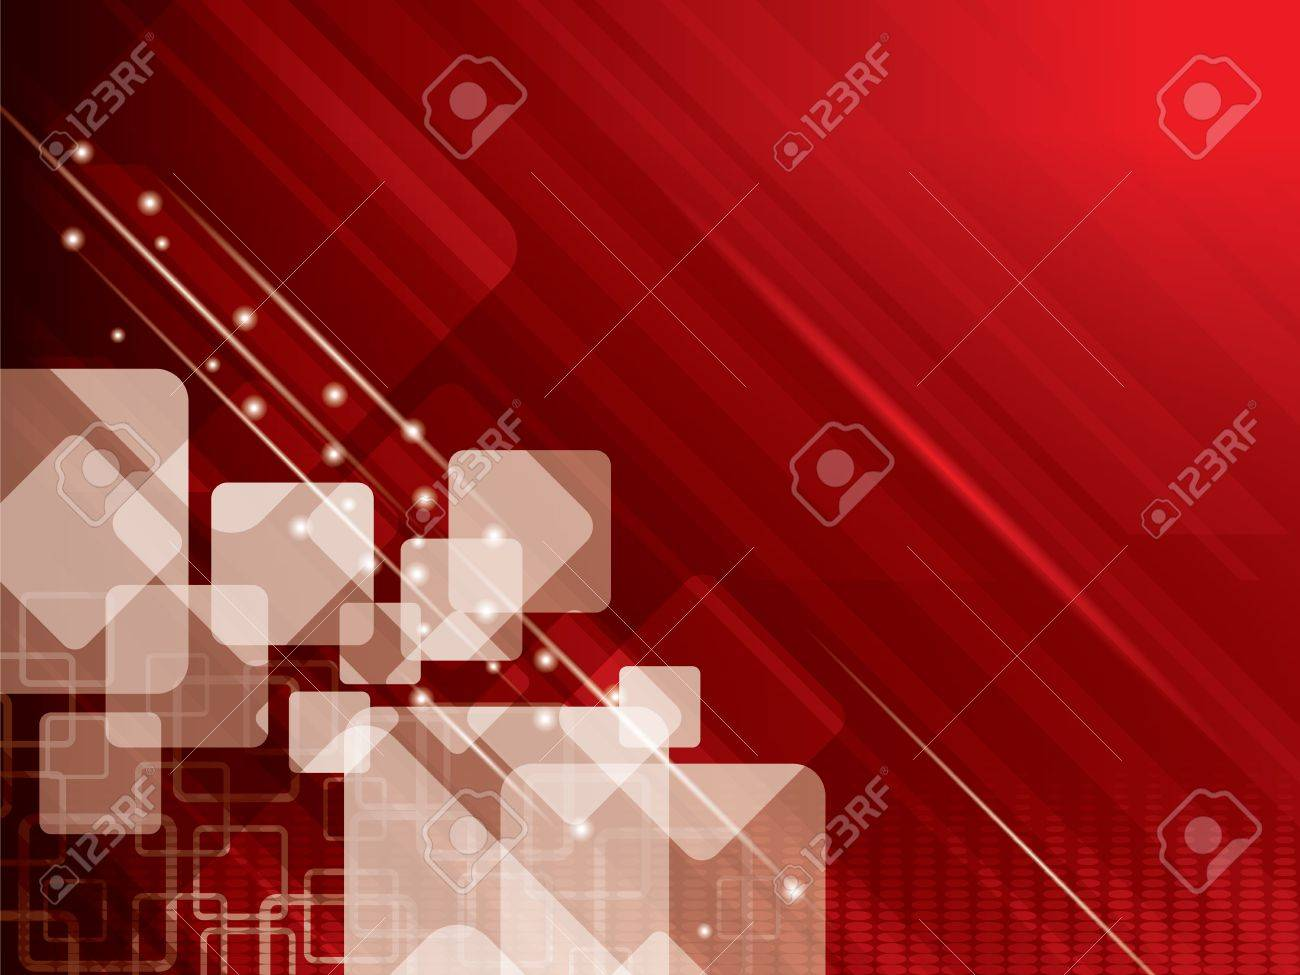 vector illustration abstract background with red Stock Vector - 15700982